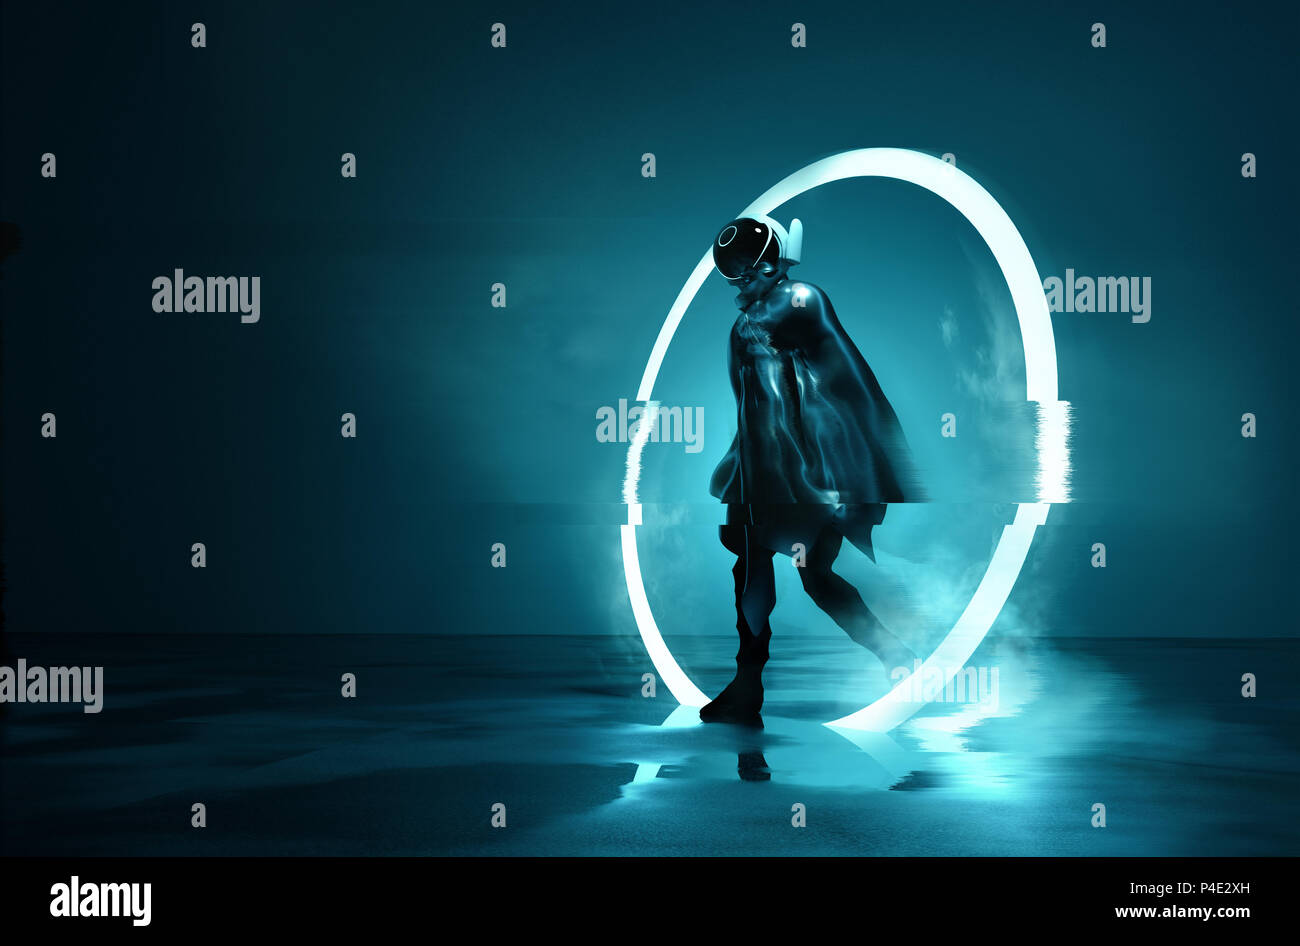 Exiting The Void. A futuristic Space astronaut exiting a glowing loop through time. Conceptual 3D Illustration. - Stock Image